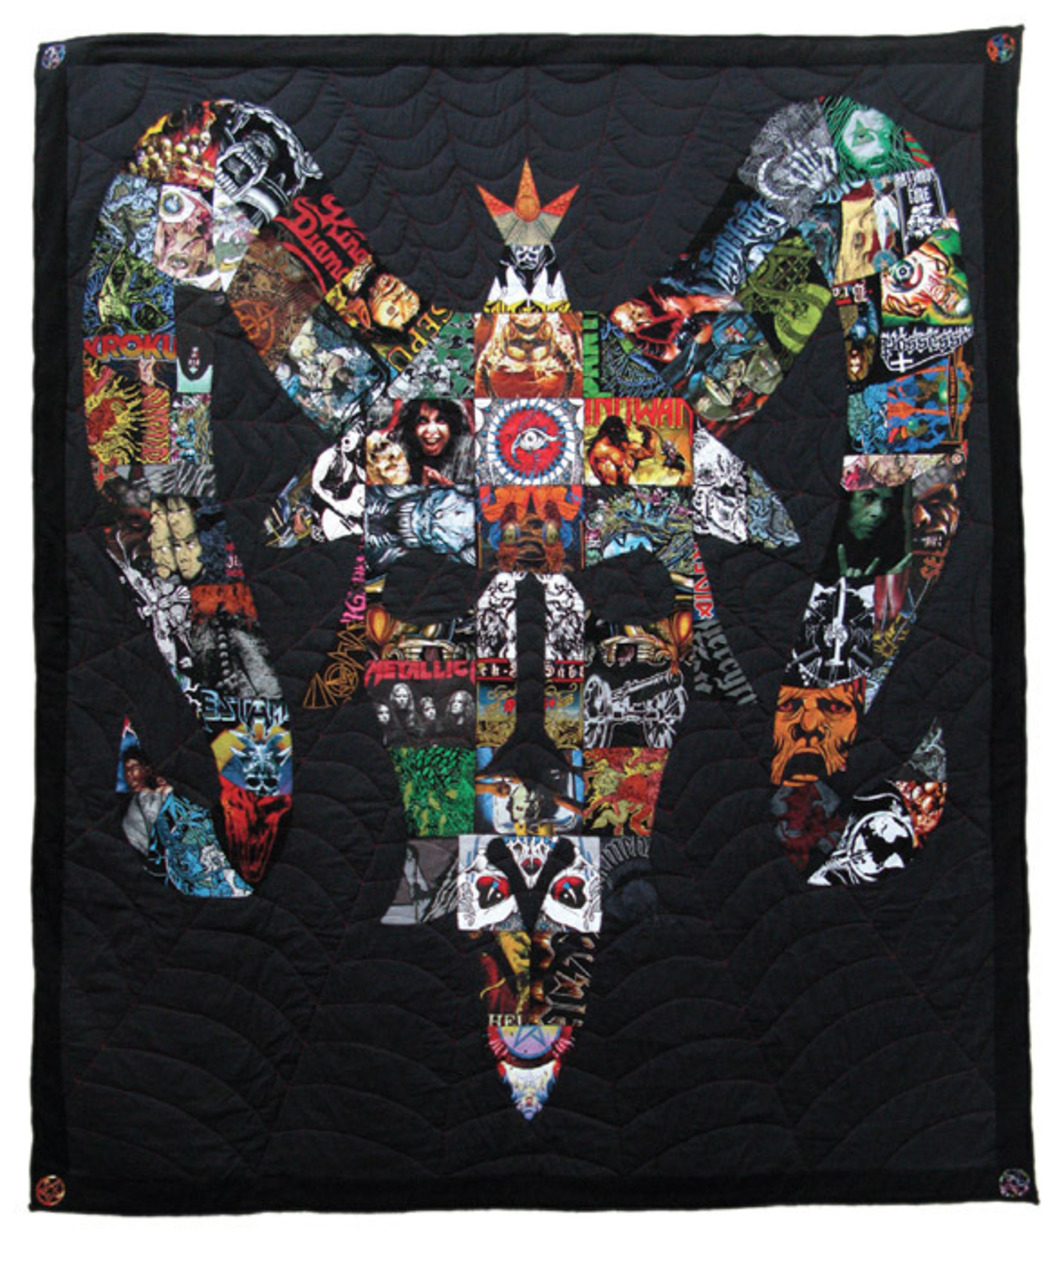 "Ben Venom, Don't Wake Me Lucifer!, 2010, handmade quilted heavy metal T-shirts, fabric, batting, thread, 83 x 95""."